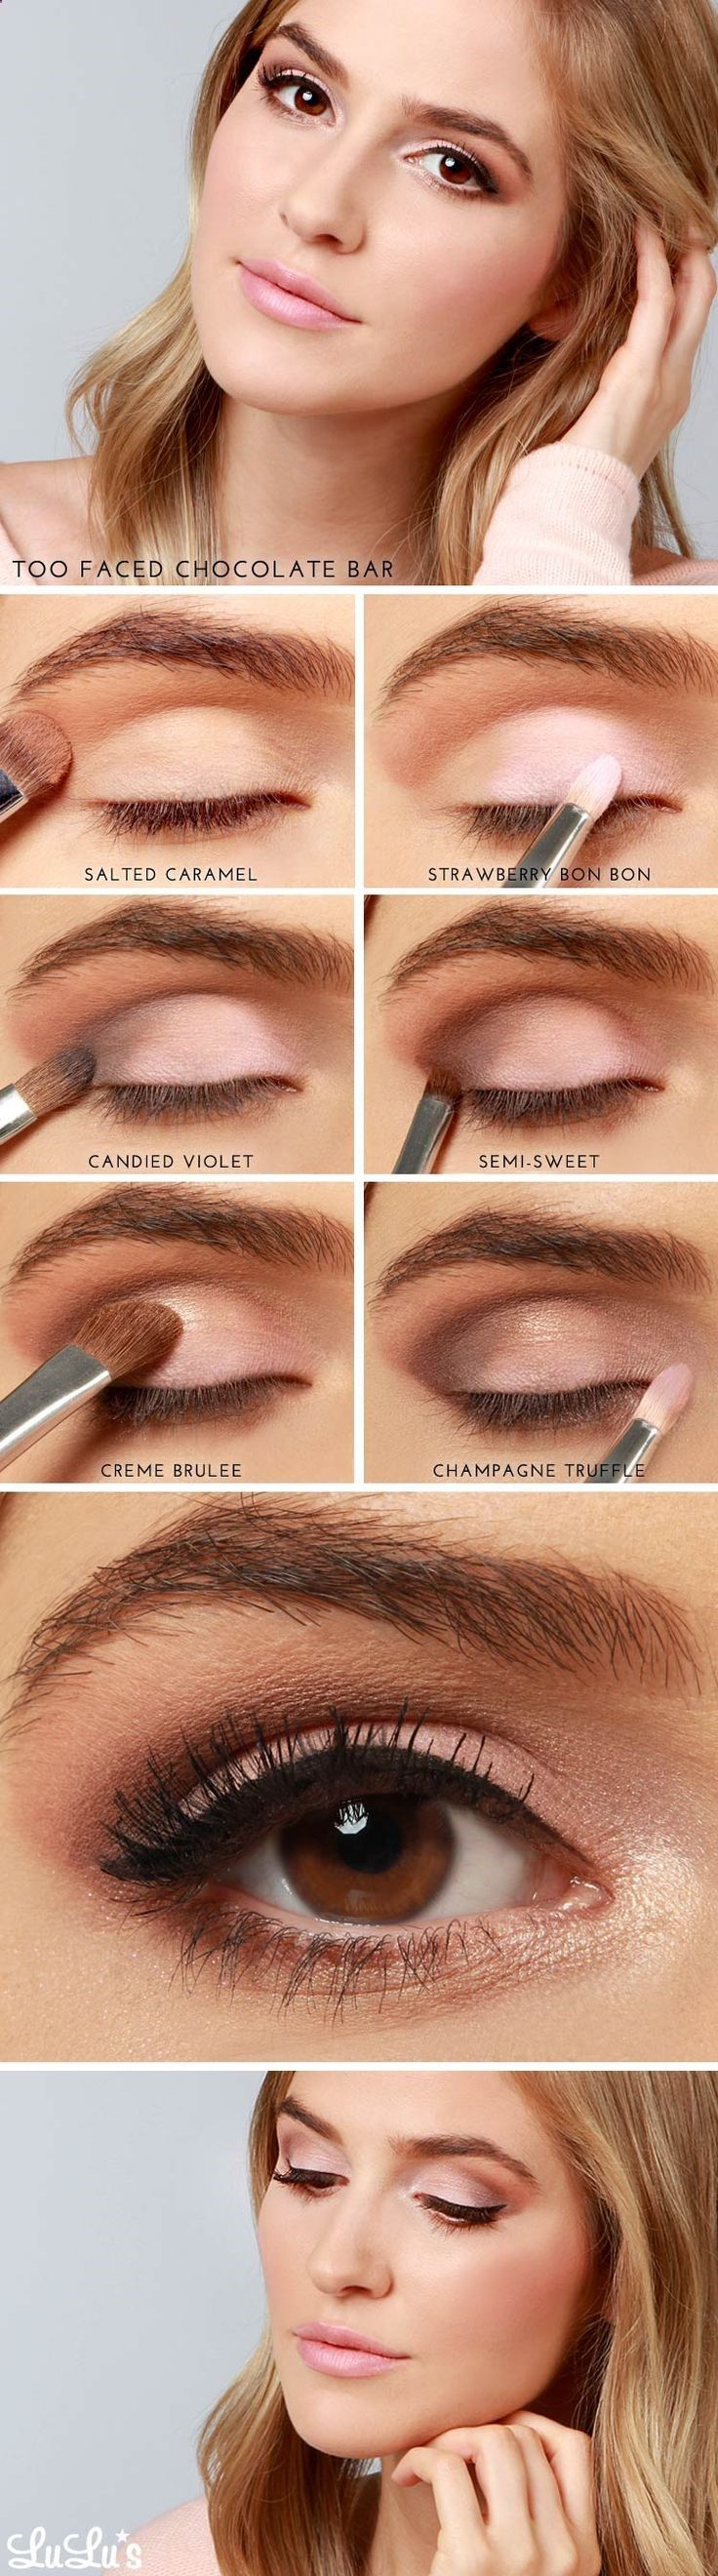 Natural makeup amazing eye makeup tutorial for a subtle natural natural makeup amazing eye makeup tutorial for a subtle natural smokey eye using the toofaced chocolate bar eyeshadow get it at beauty you baditri Choice Image